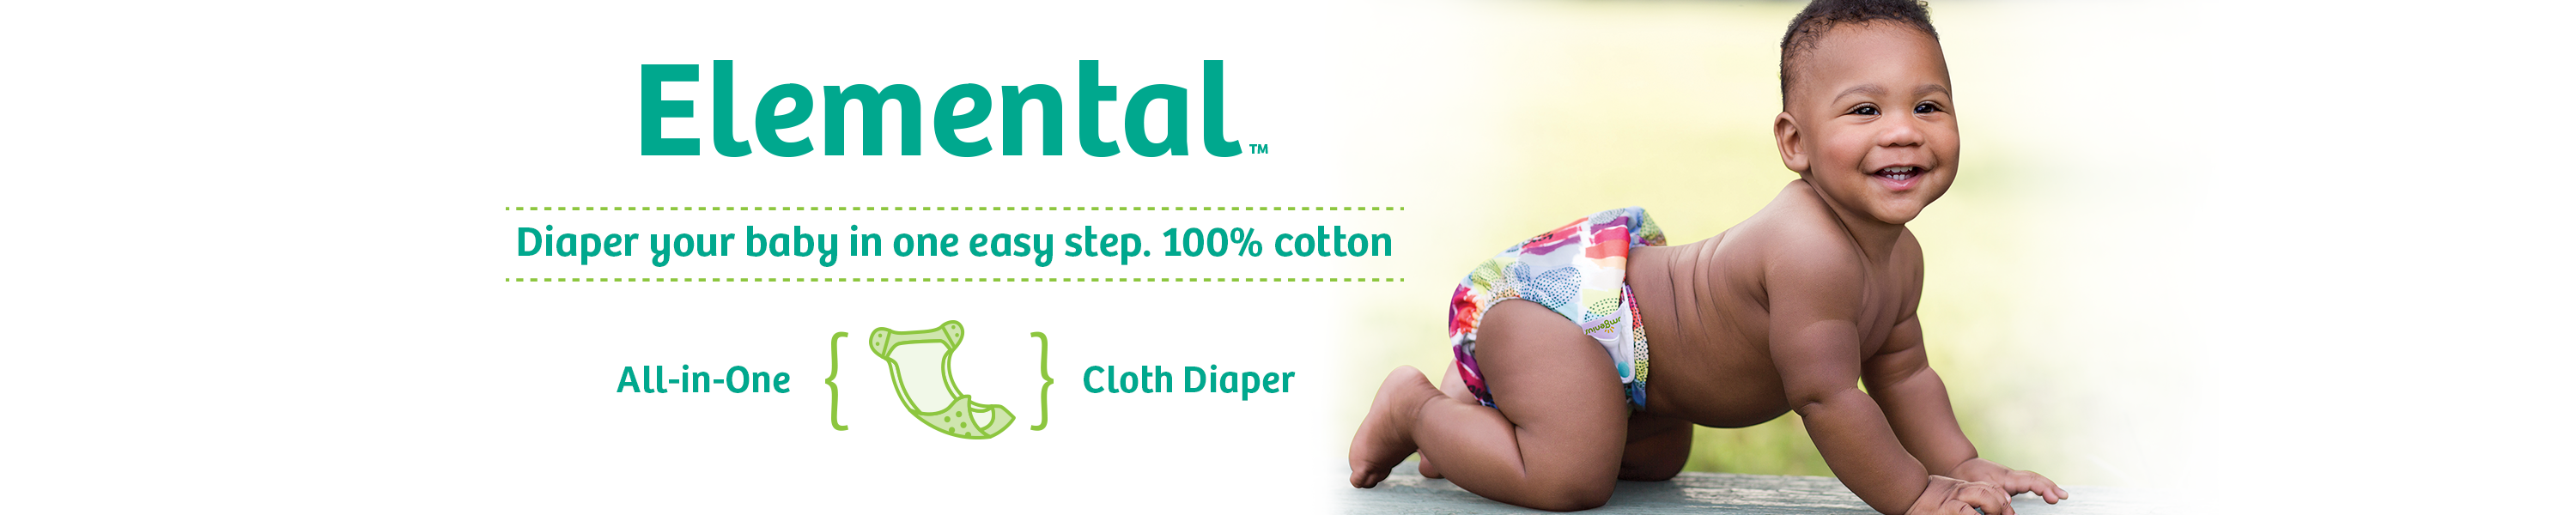 Image of Elemental! Diaper your body in one easy step. 100% cotton